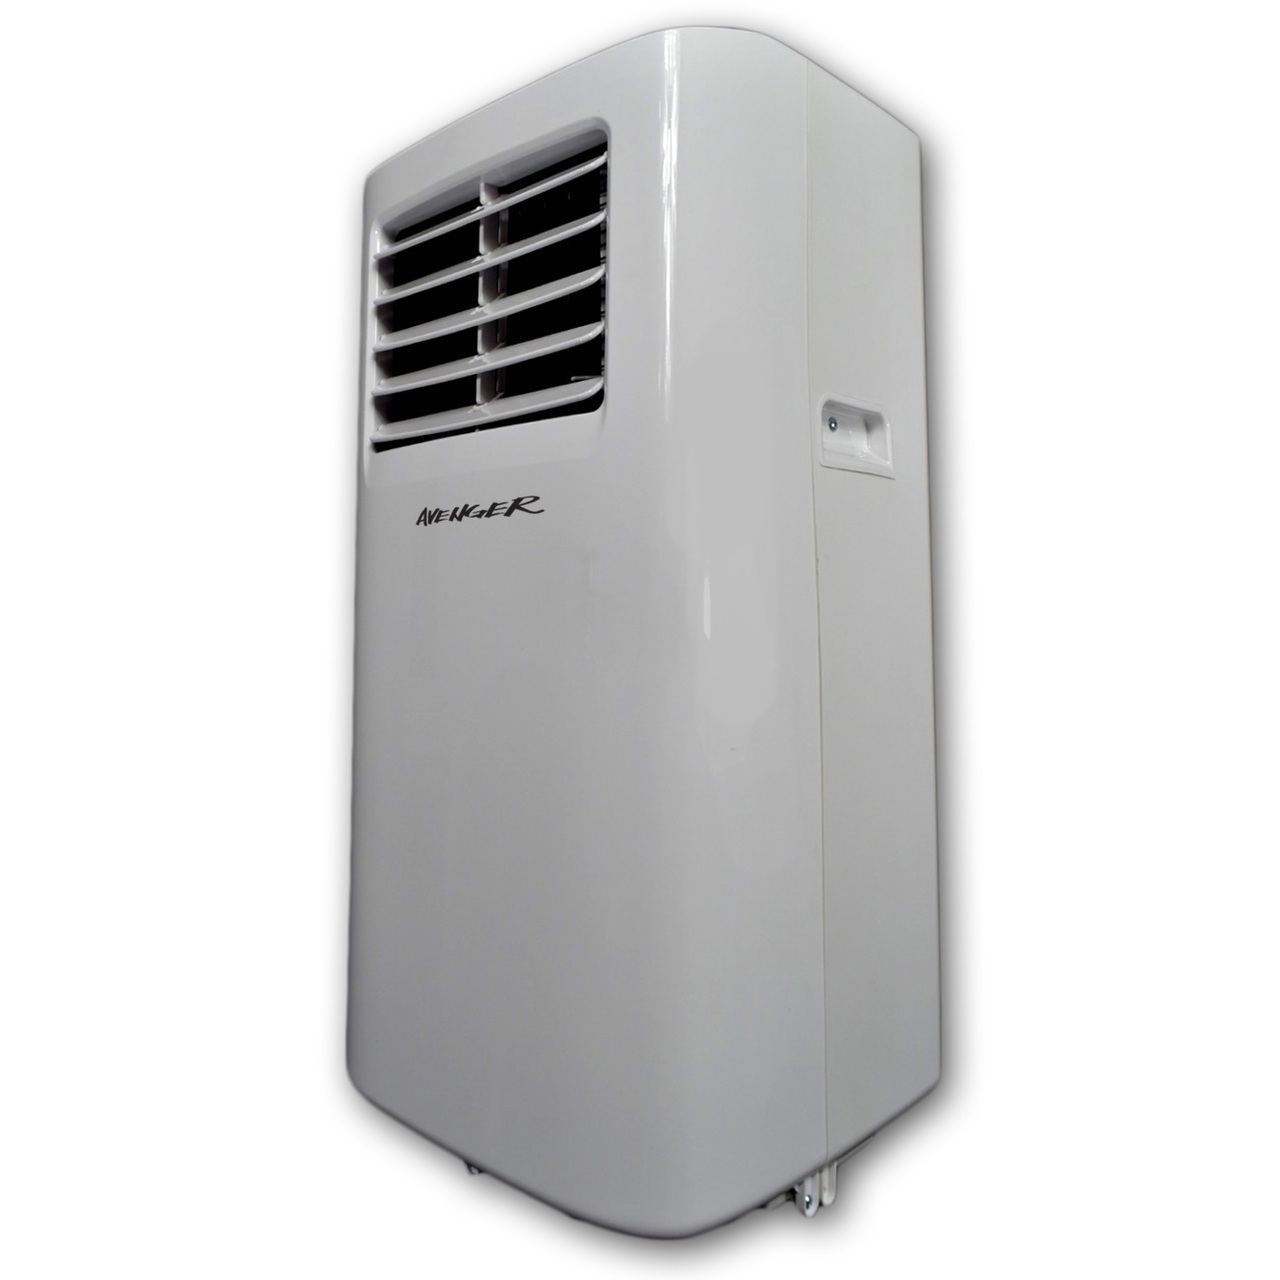 avenger btu portable air conditioner with remote control - Ventless Portable Air Conditioner